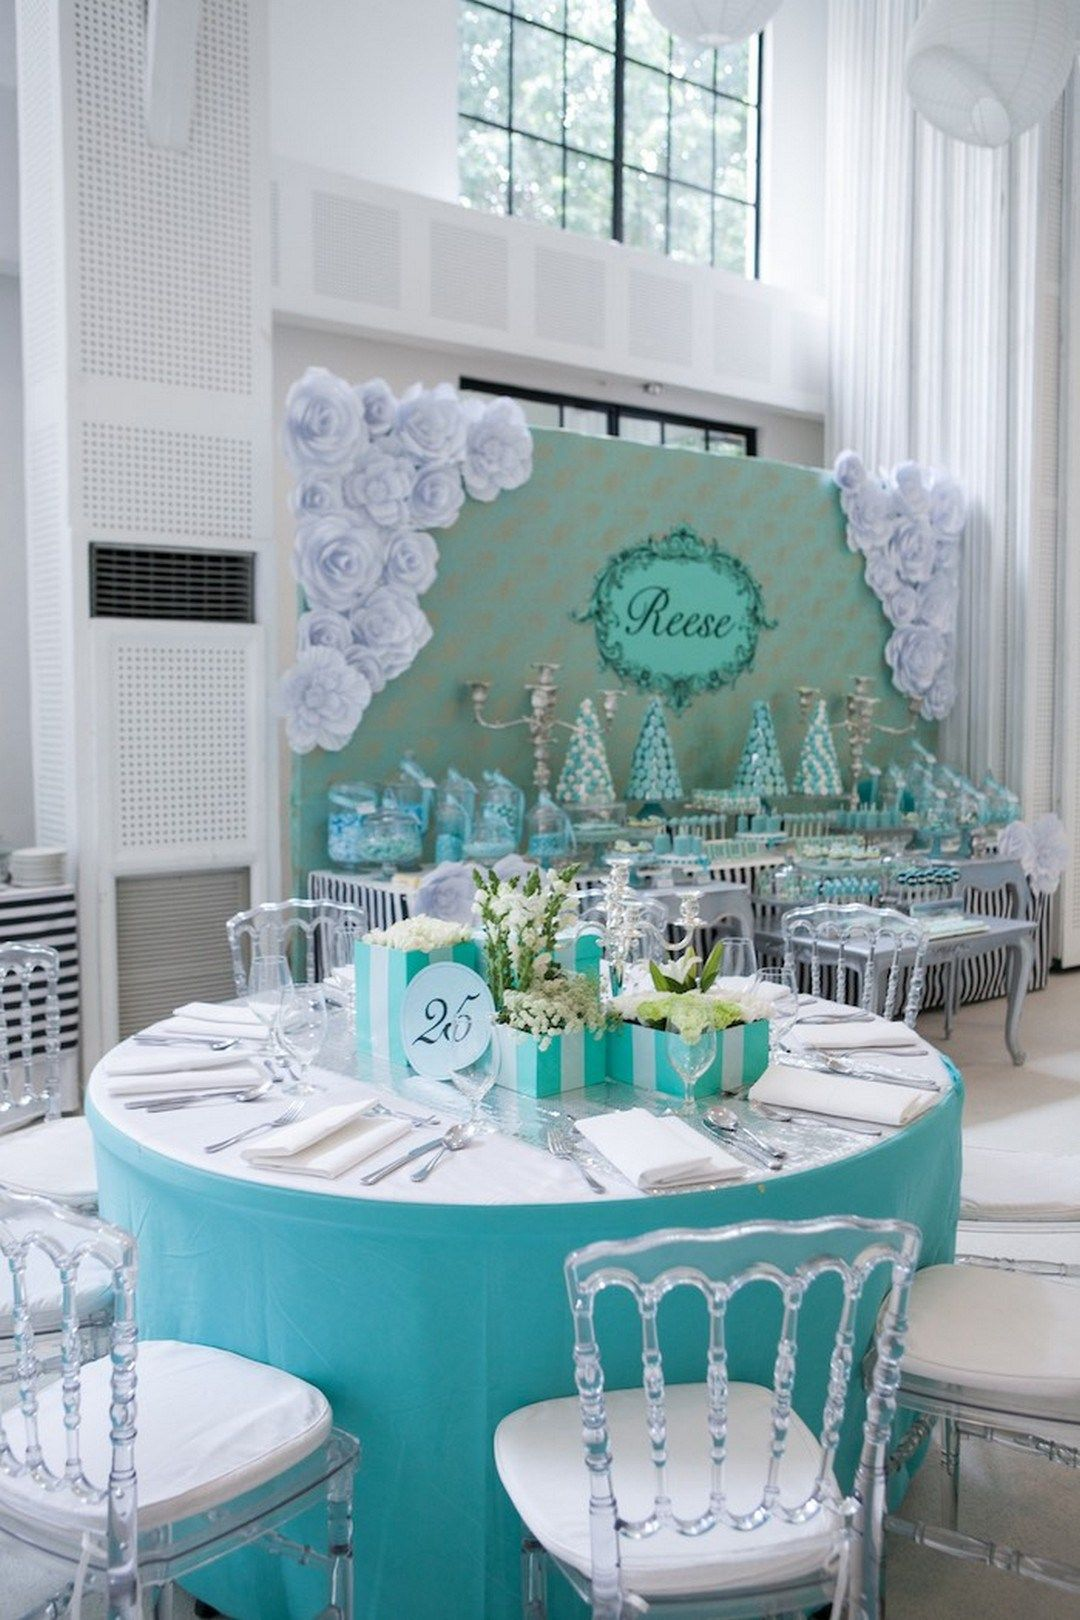 Awesome quinceanera ideas tiffany blue themed wedding